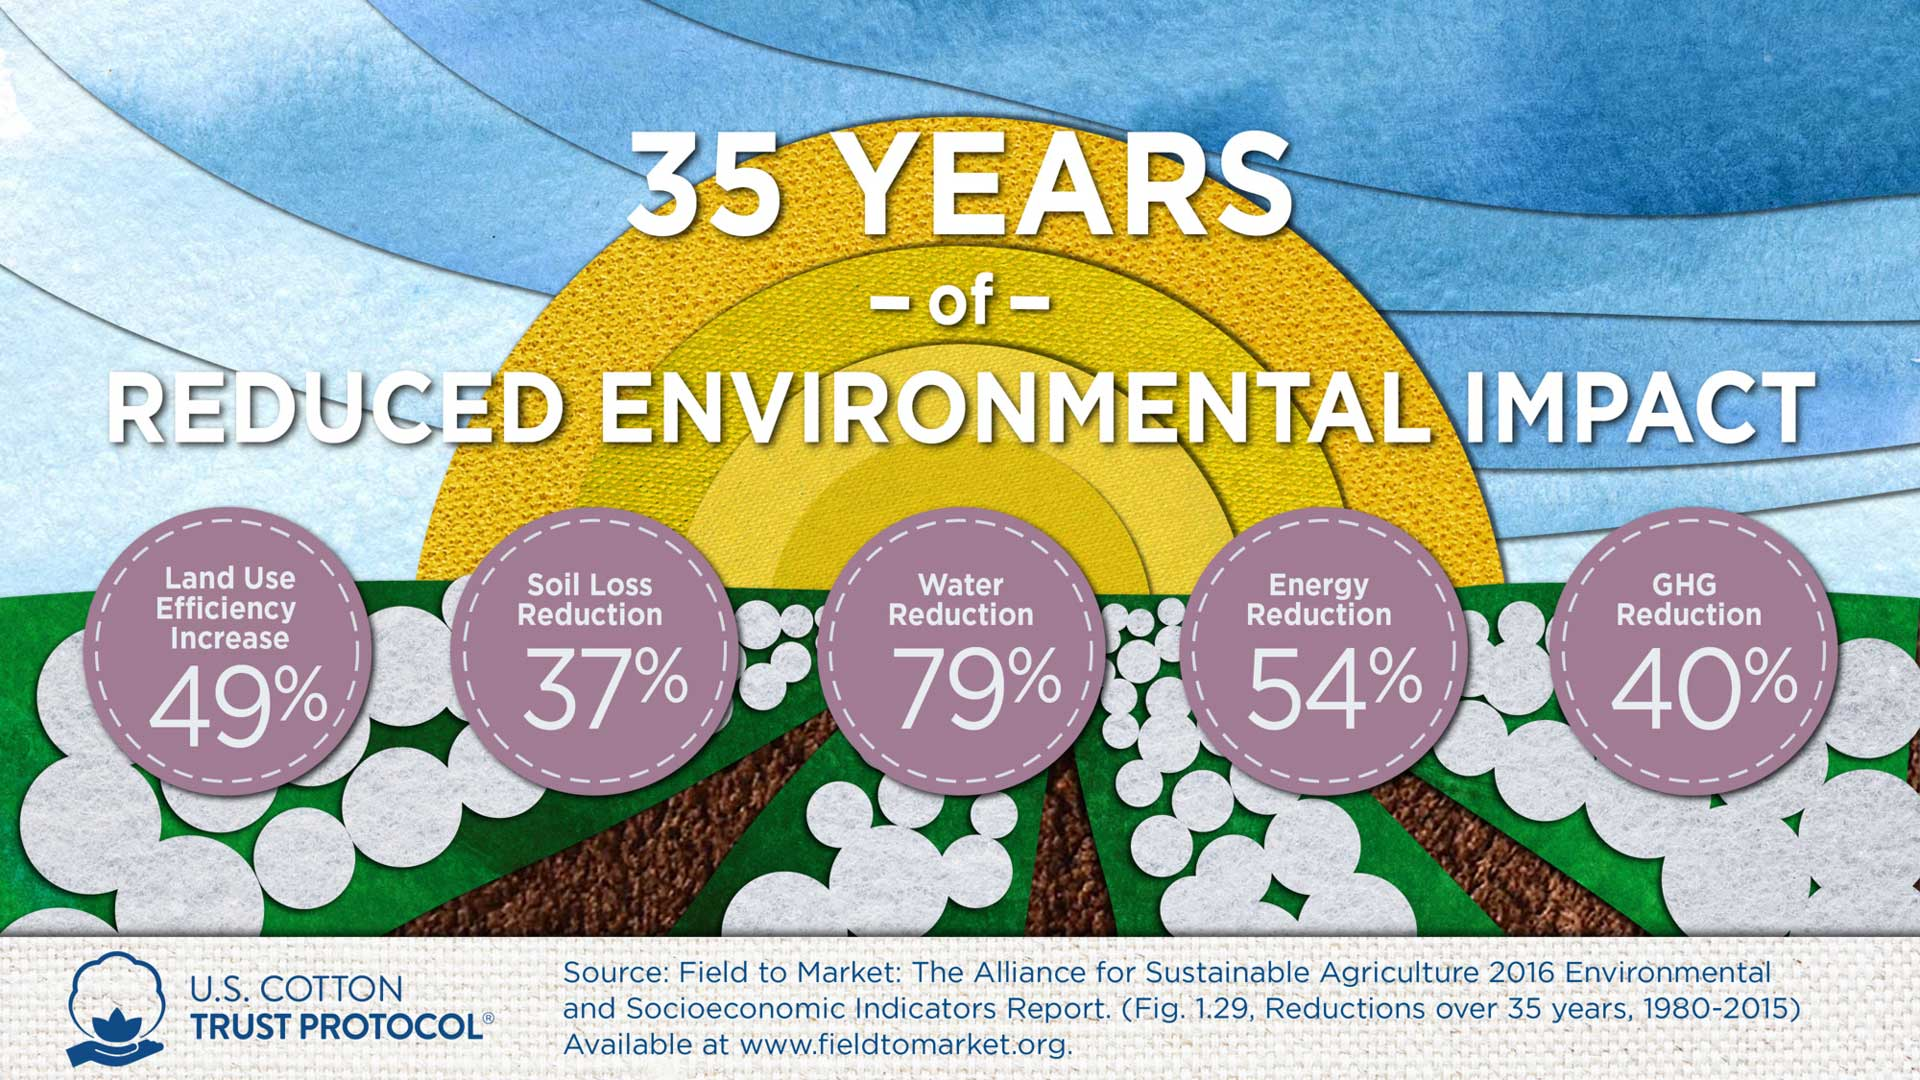 Over the next 35 years, our goal is to reduce soil loss, water usage, and GHG while increasing land use efficiency and soil carbon.